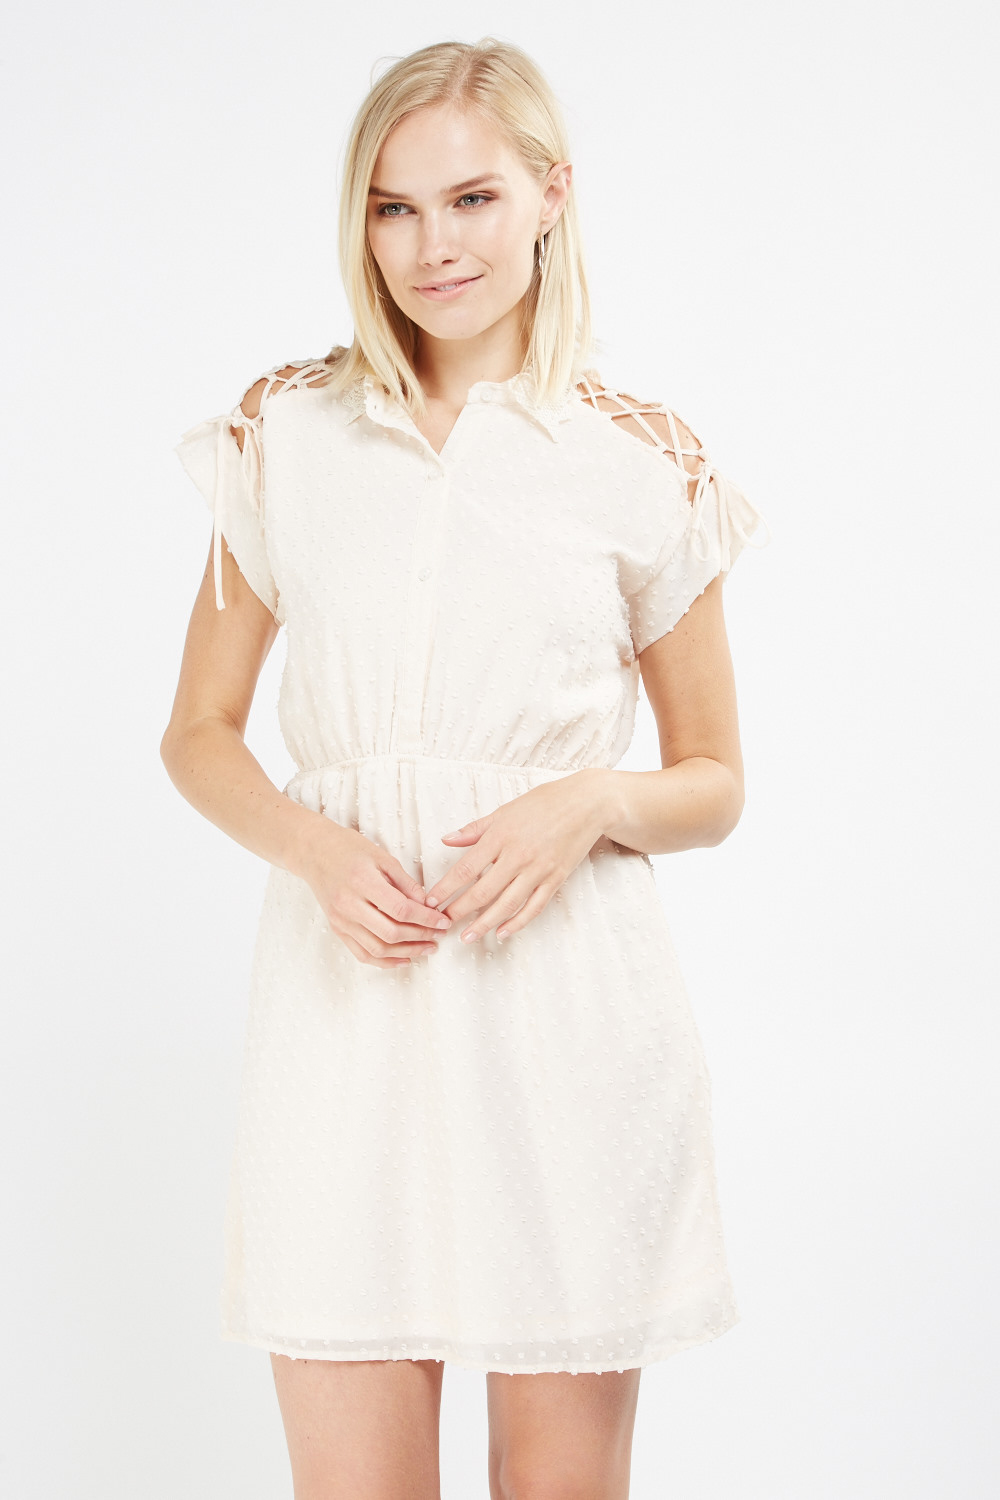 Very Lace Collar Sheer Tunic Dress - Peach - Just £5 TM04